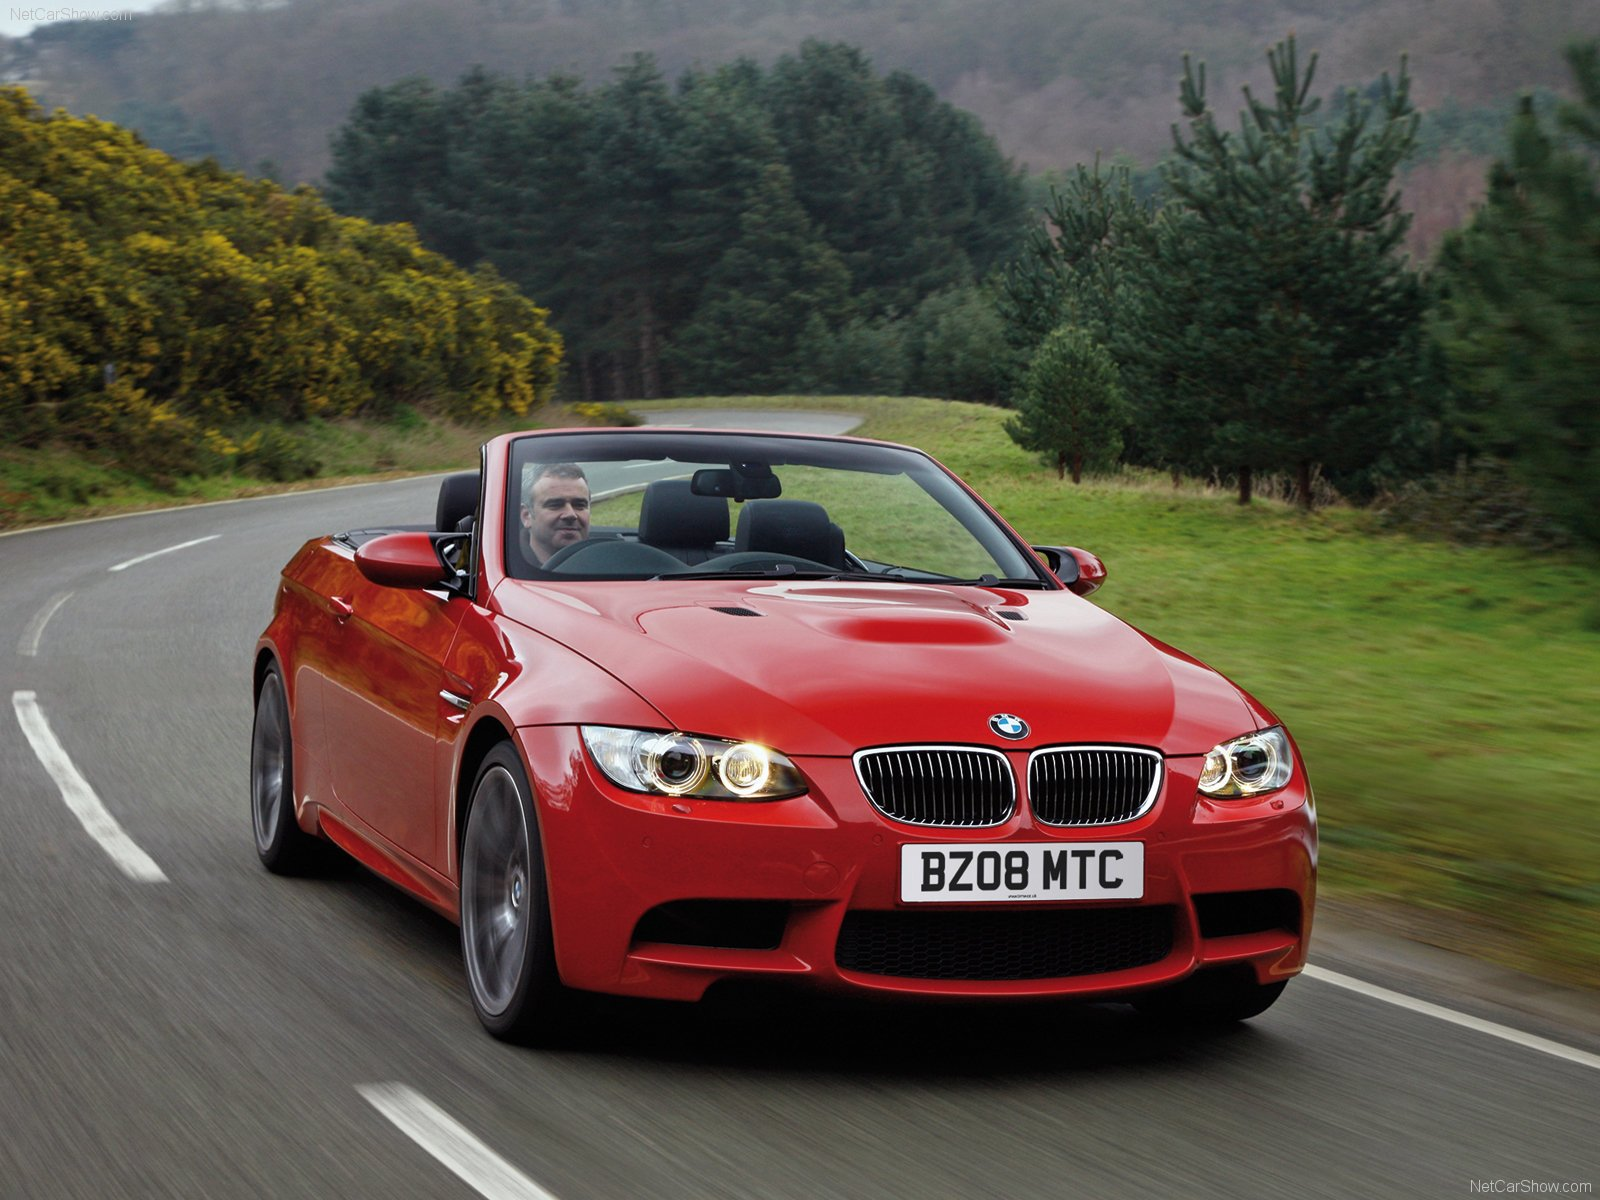 New Car Model 2012 Cool Bmw Cars Wallpapers On This Month